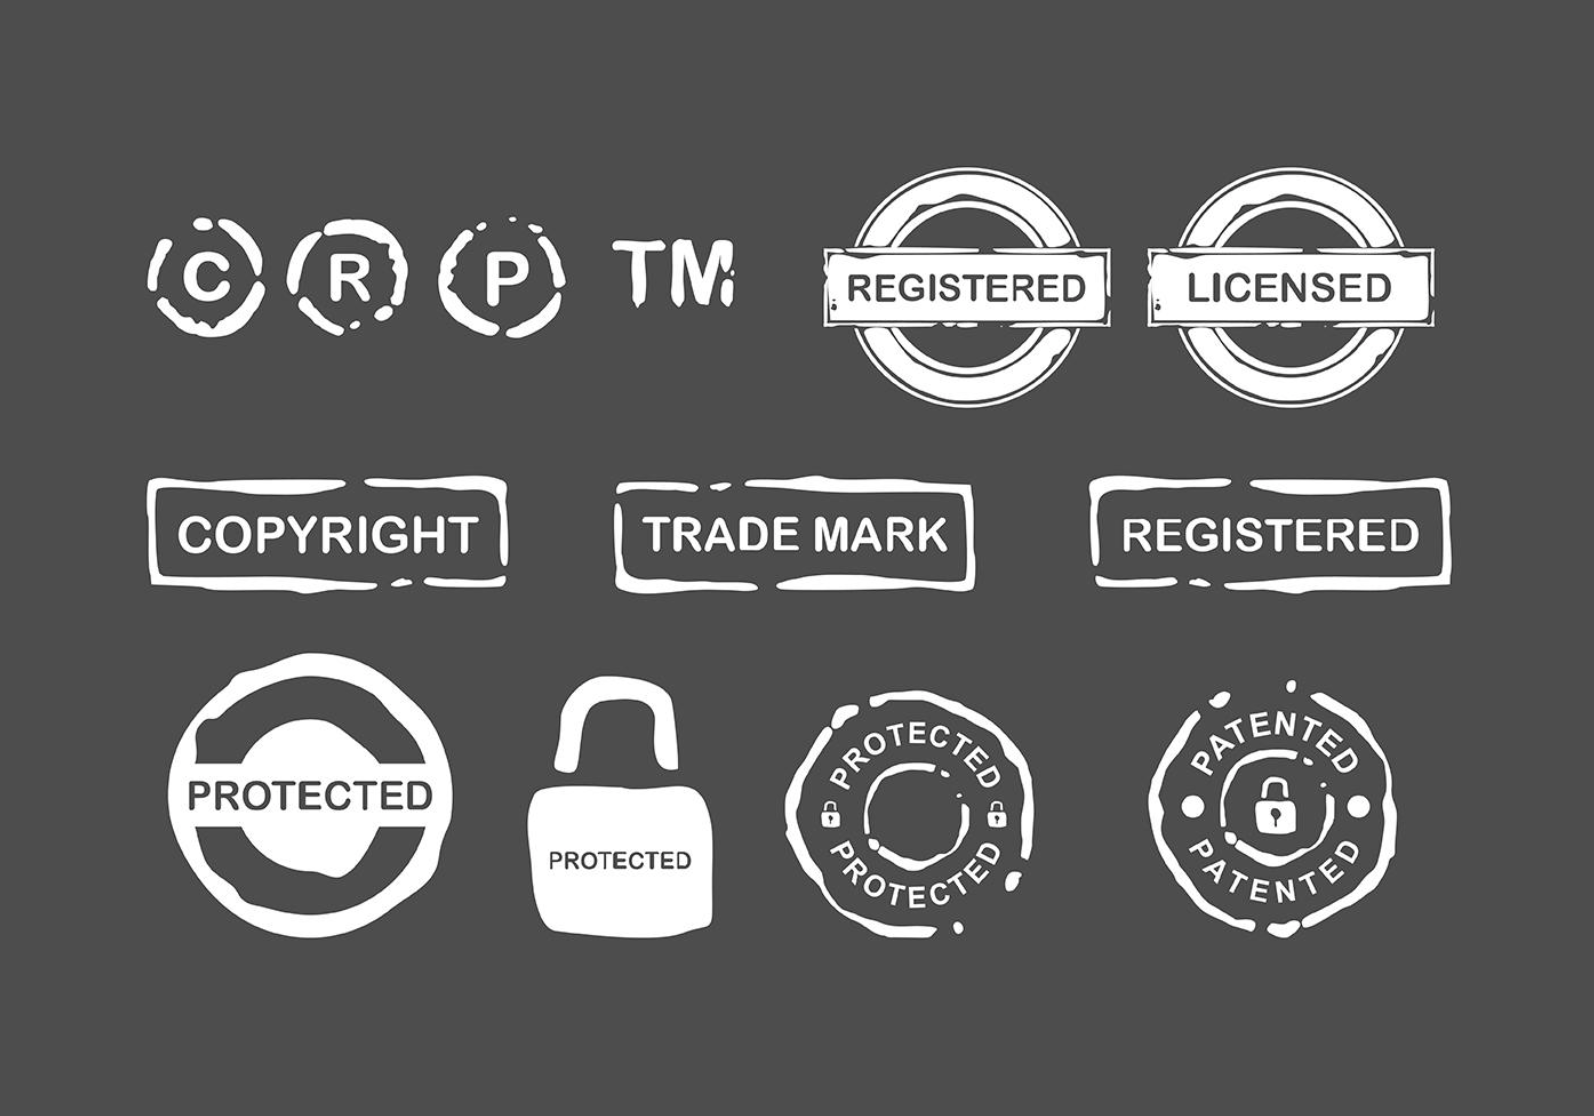 Types of IP - Intellectual Property related costs